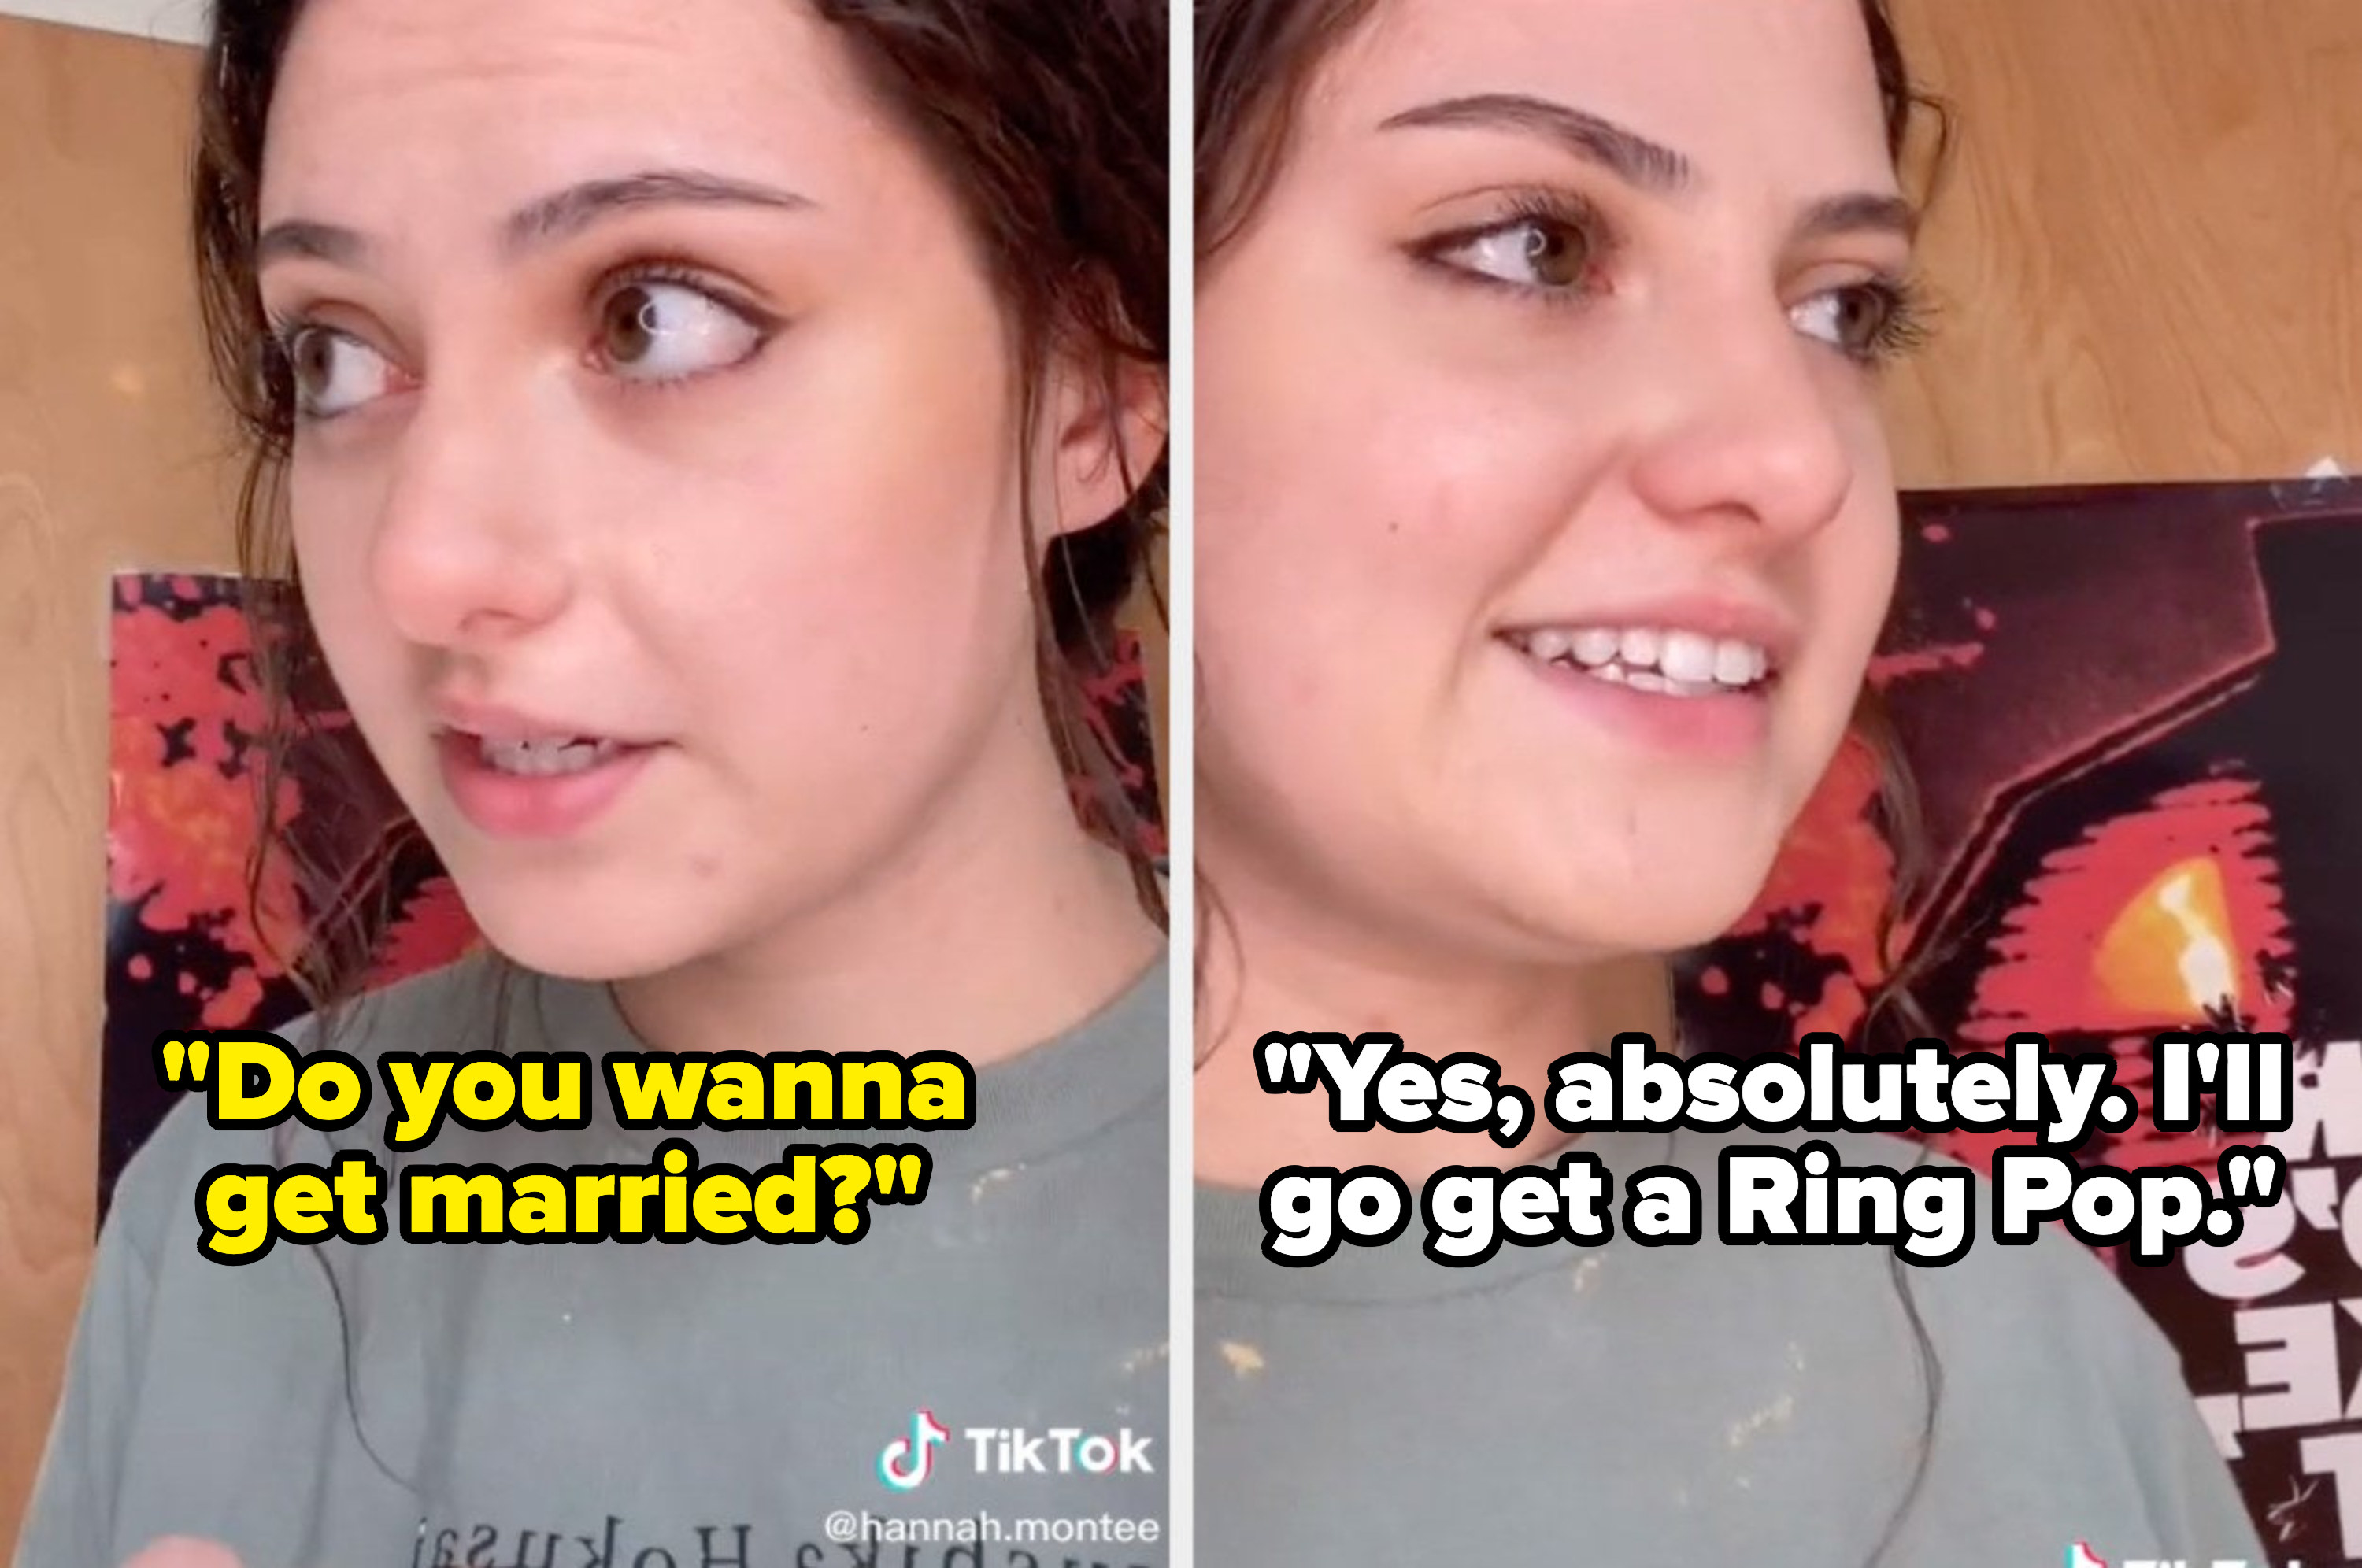 """A TikToker pretends to be a kid asking, """"Do you wanna get married?"""" then replies, """"Yes, absolutely. I'll go get a Ring Pop."""""""